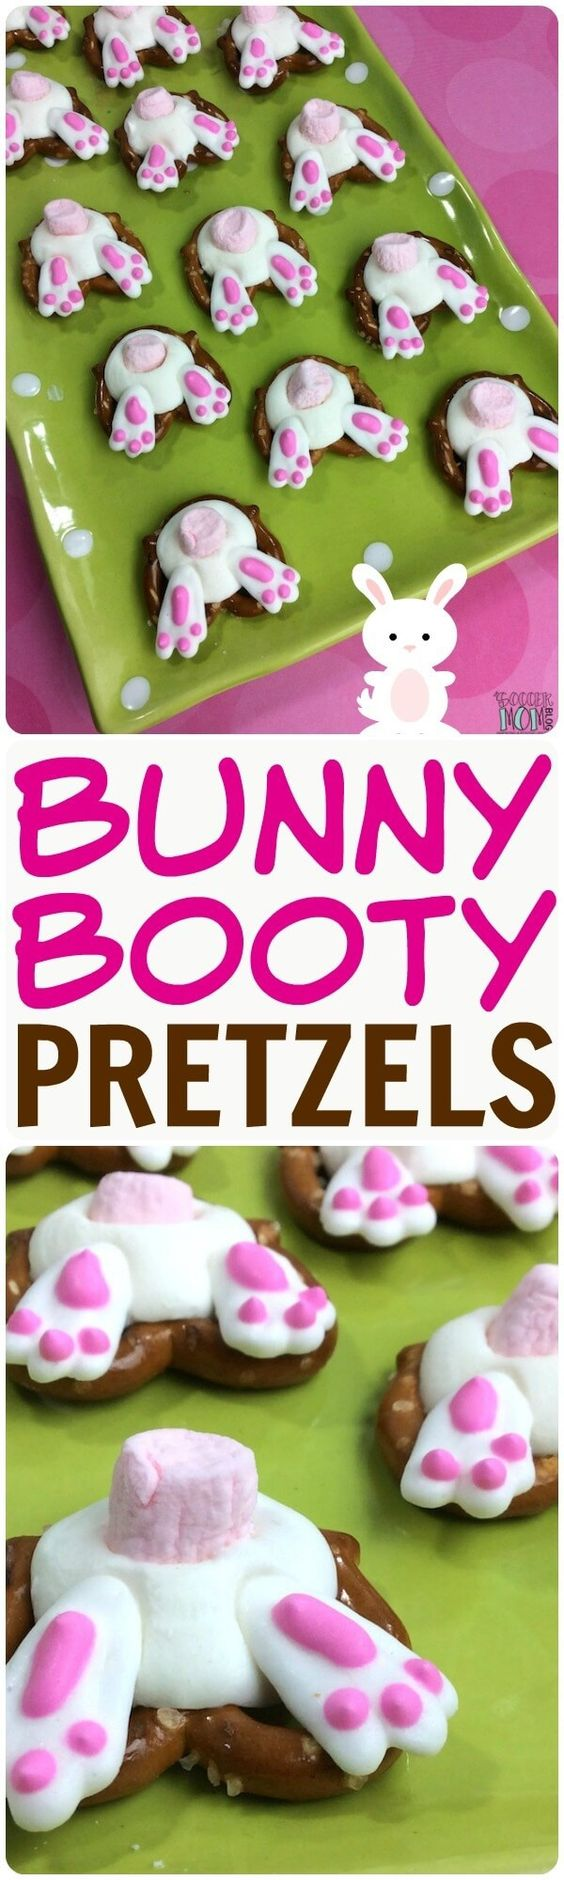 An easy Easter recipe that kids of all ages can help make - Bunny Butt Pretzels are adorable and delicious! Perfect for holiday parties or dessert gifts.: